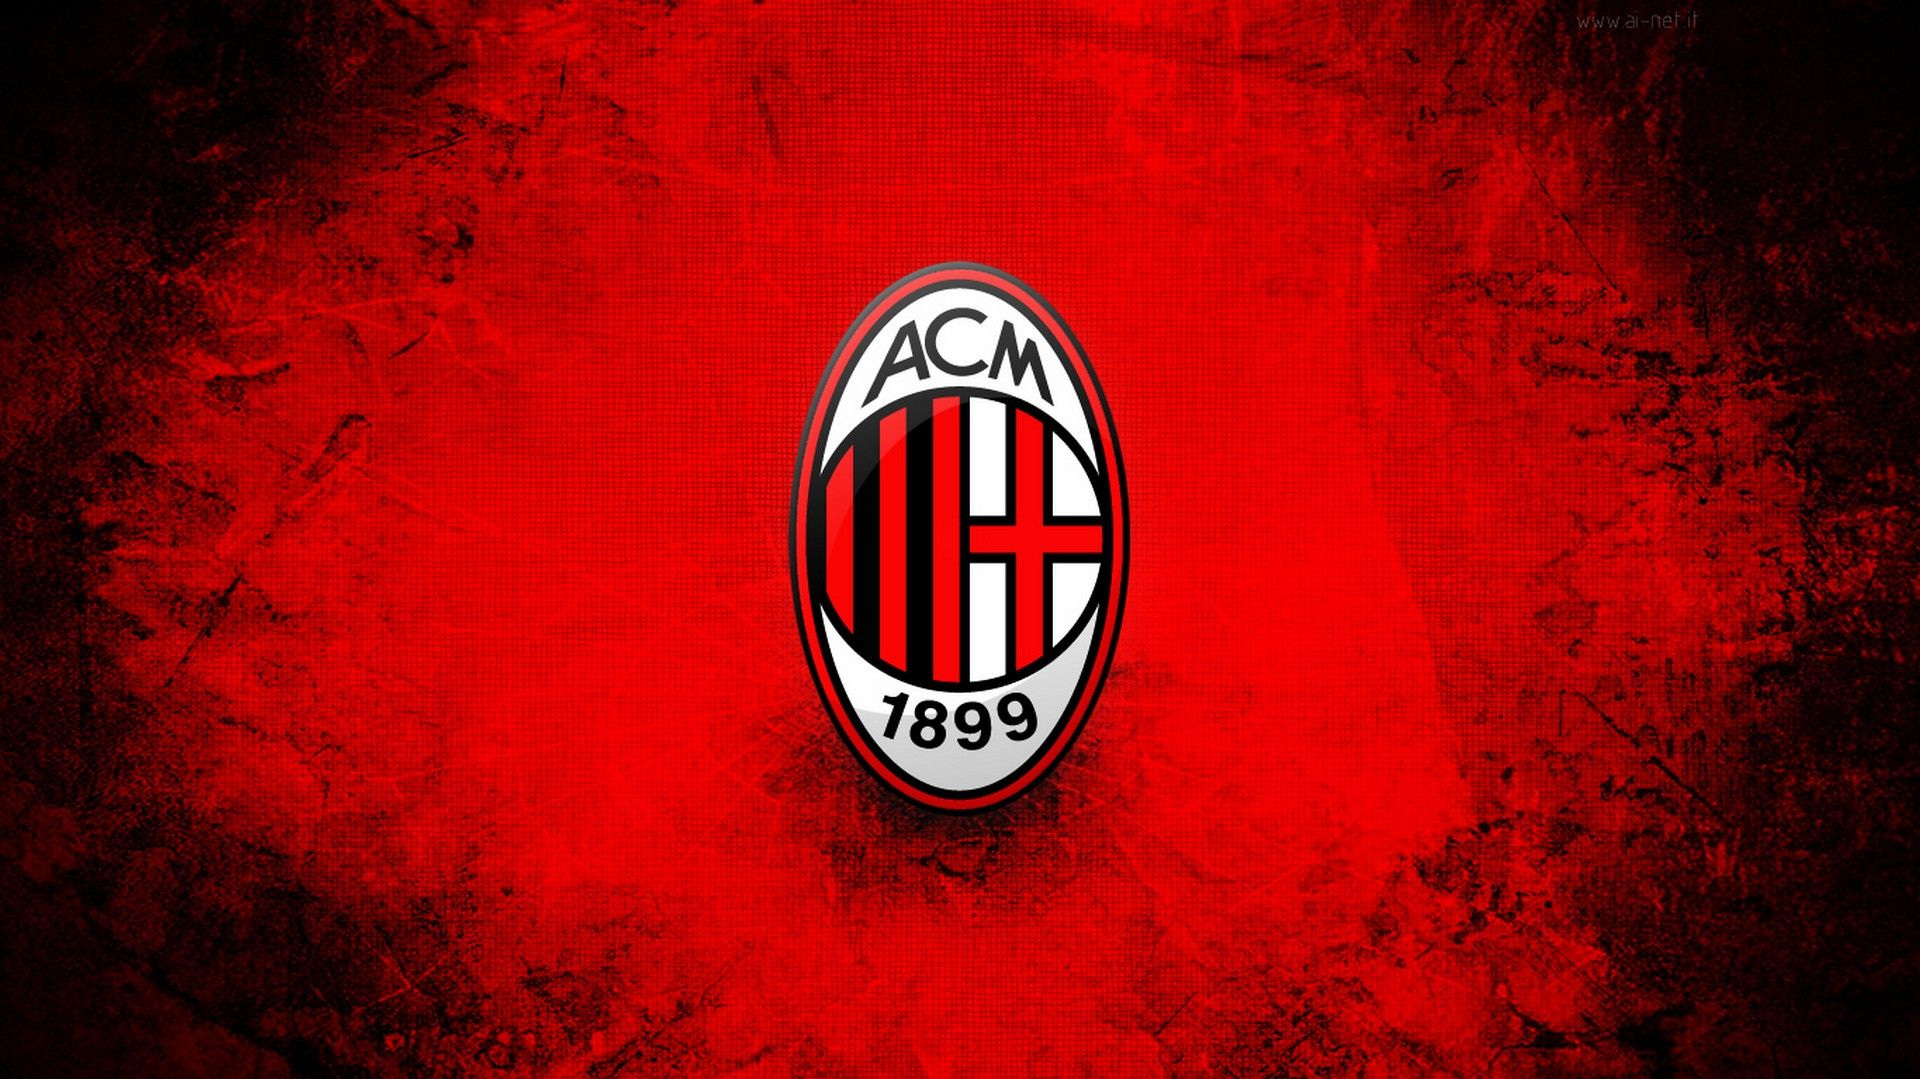 Ac Milan Wallpaper Hd Milan Wallpaper Ac Milan Milan